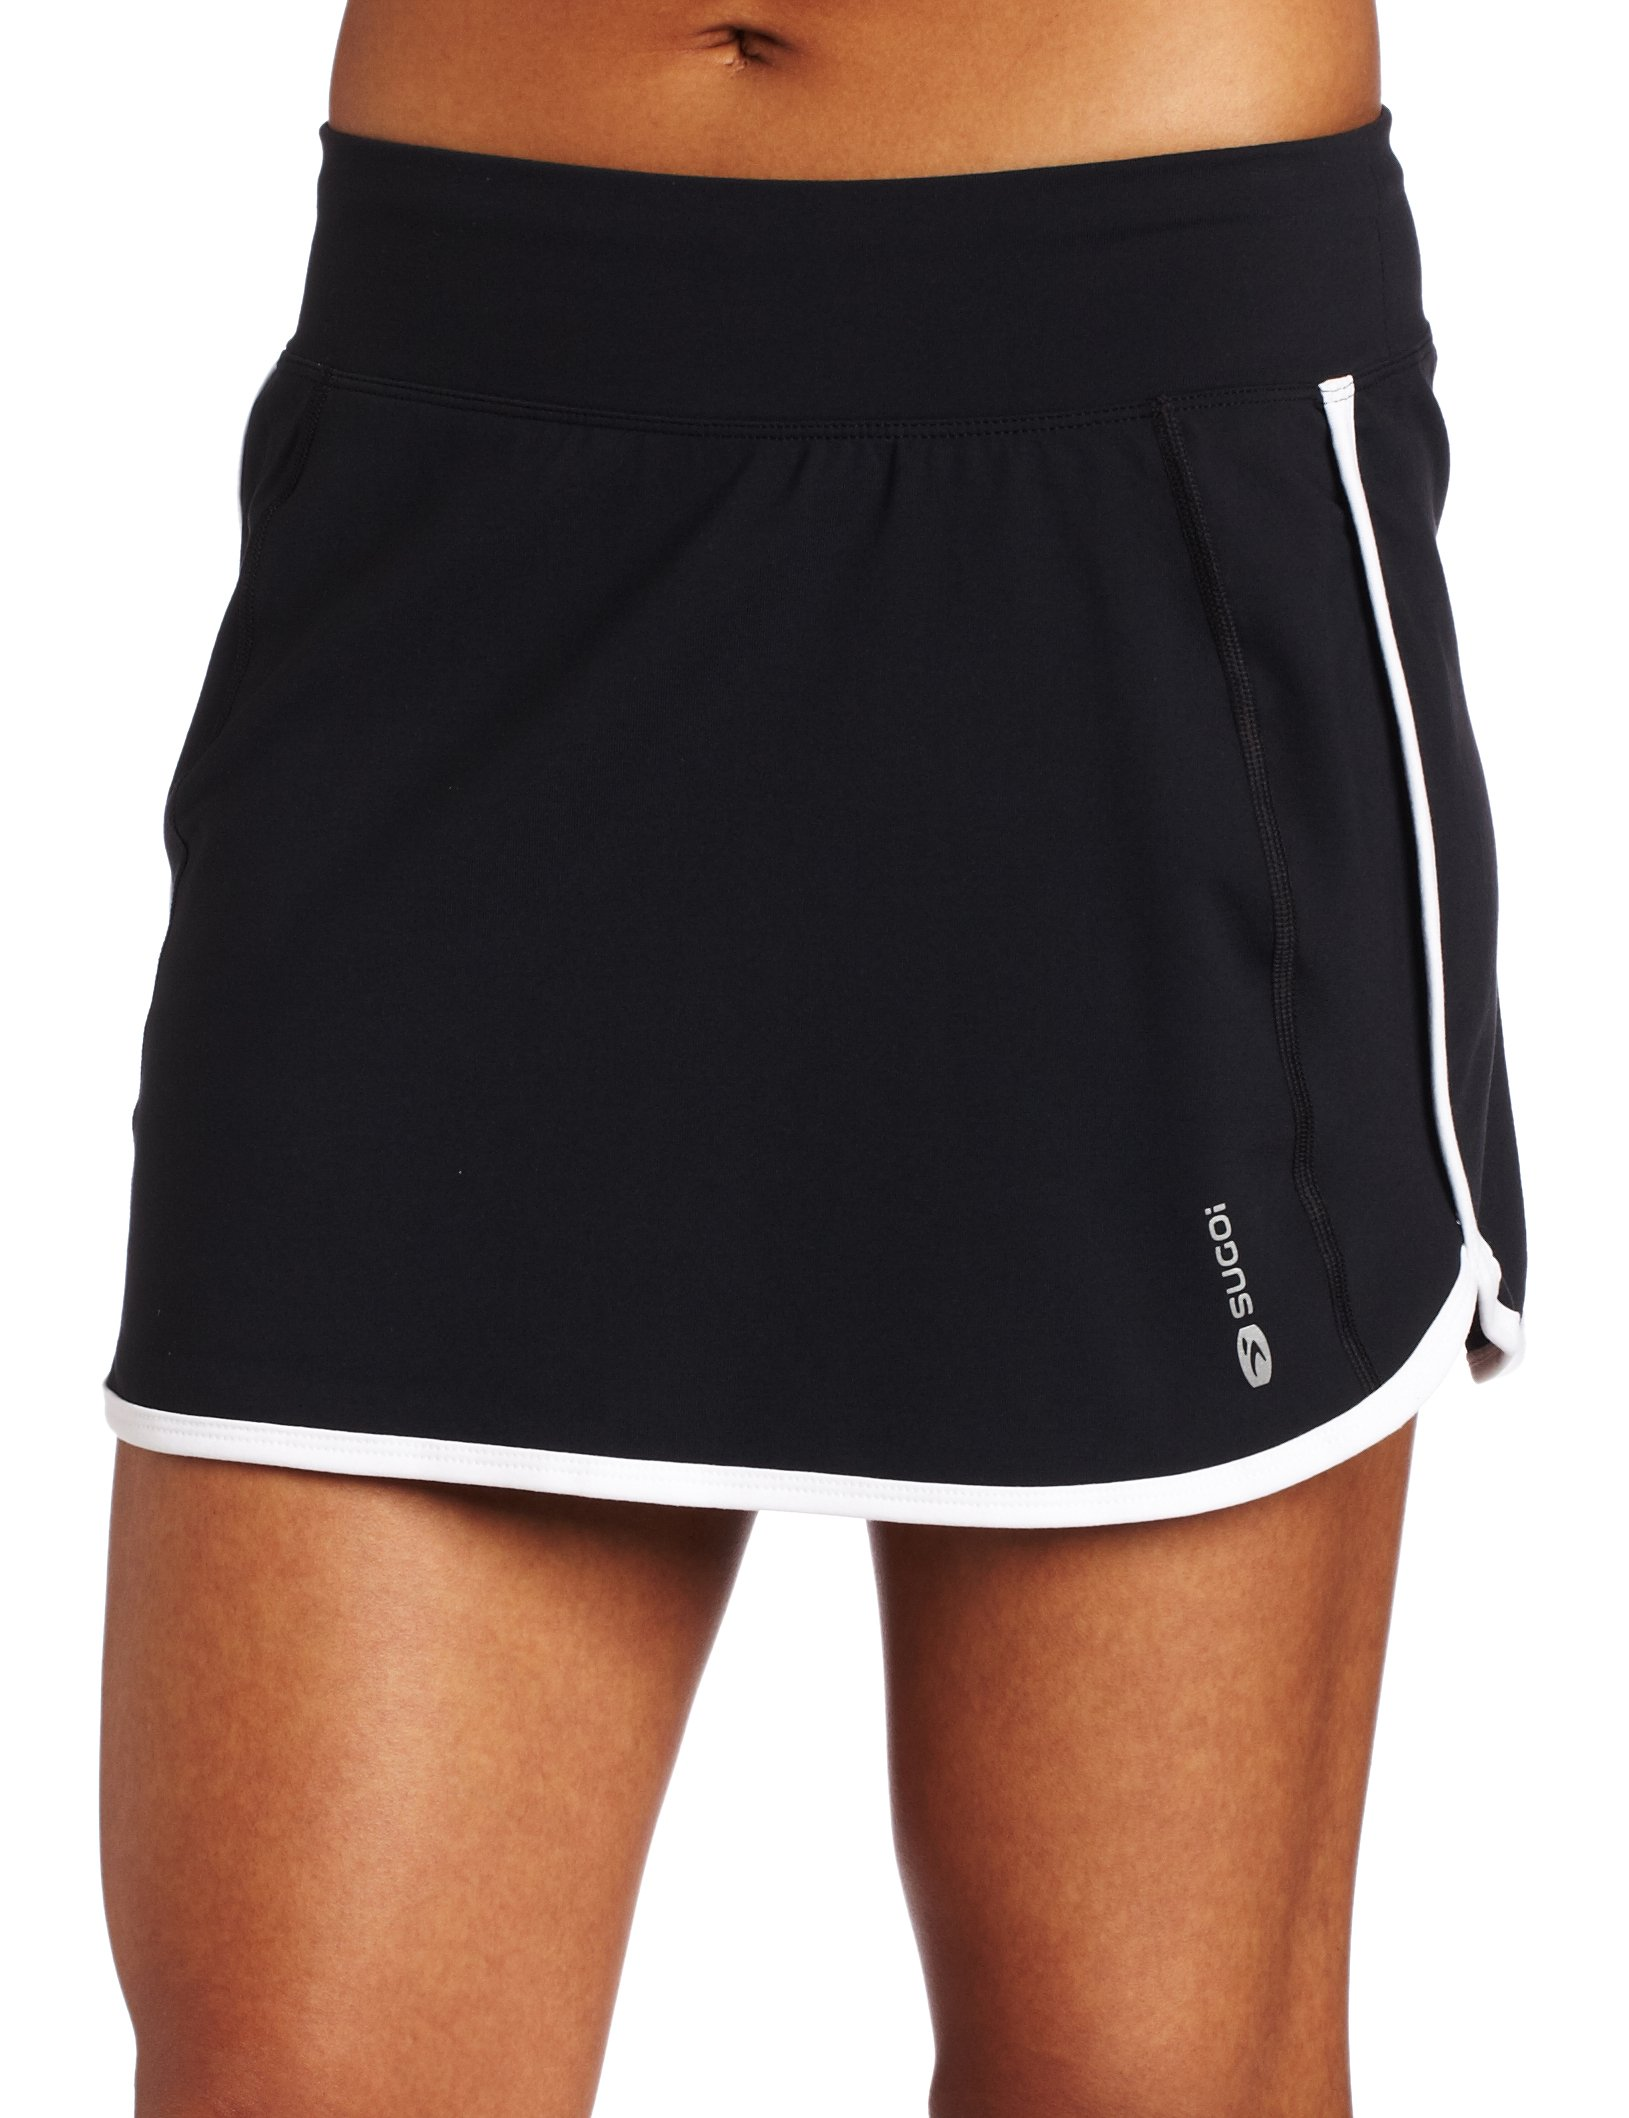 tennis skirts for women